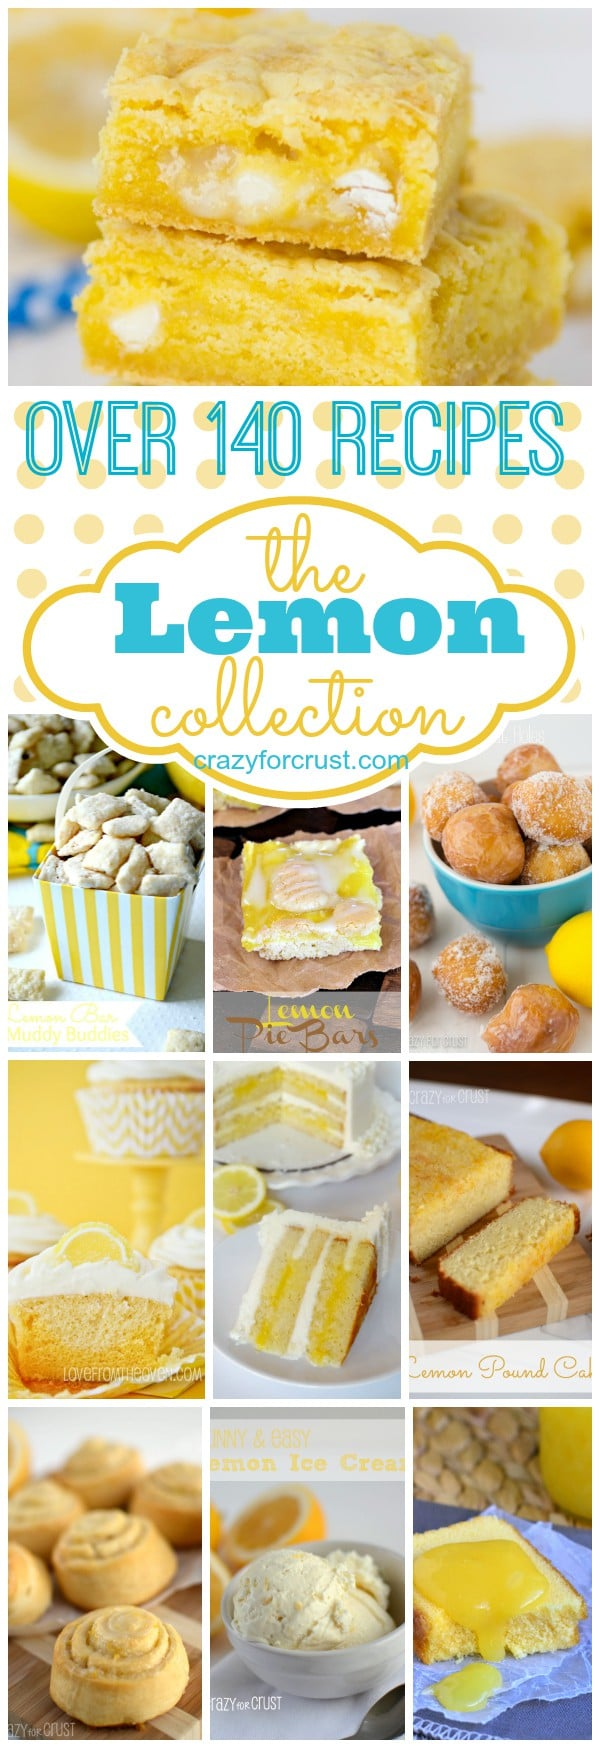 Over 140 Lemon Recipes to satisfy your citrus tooth! | crazyforcrust.com